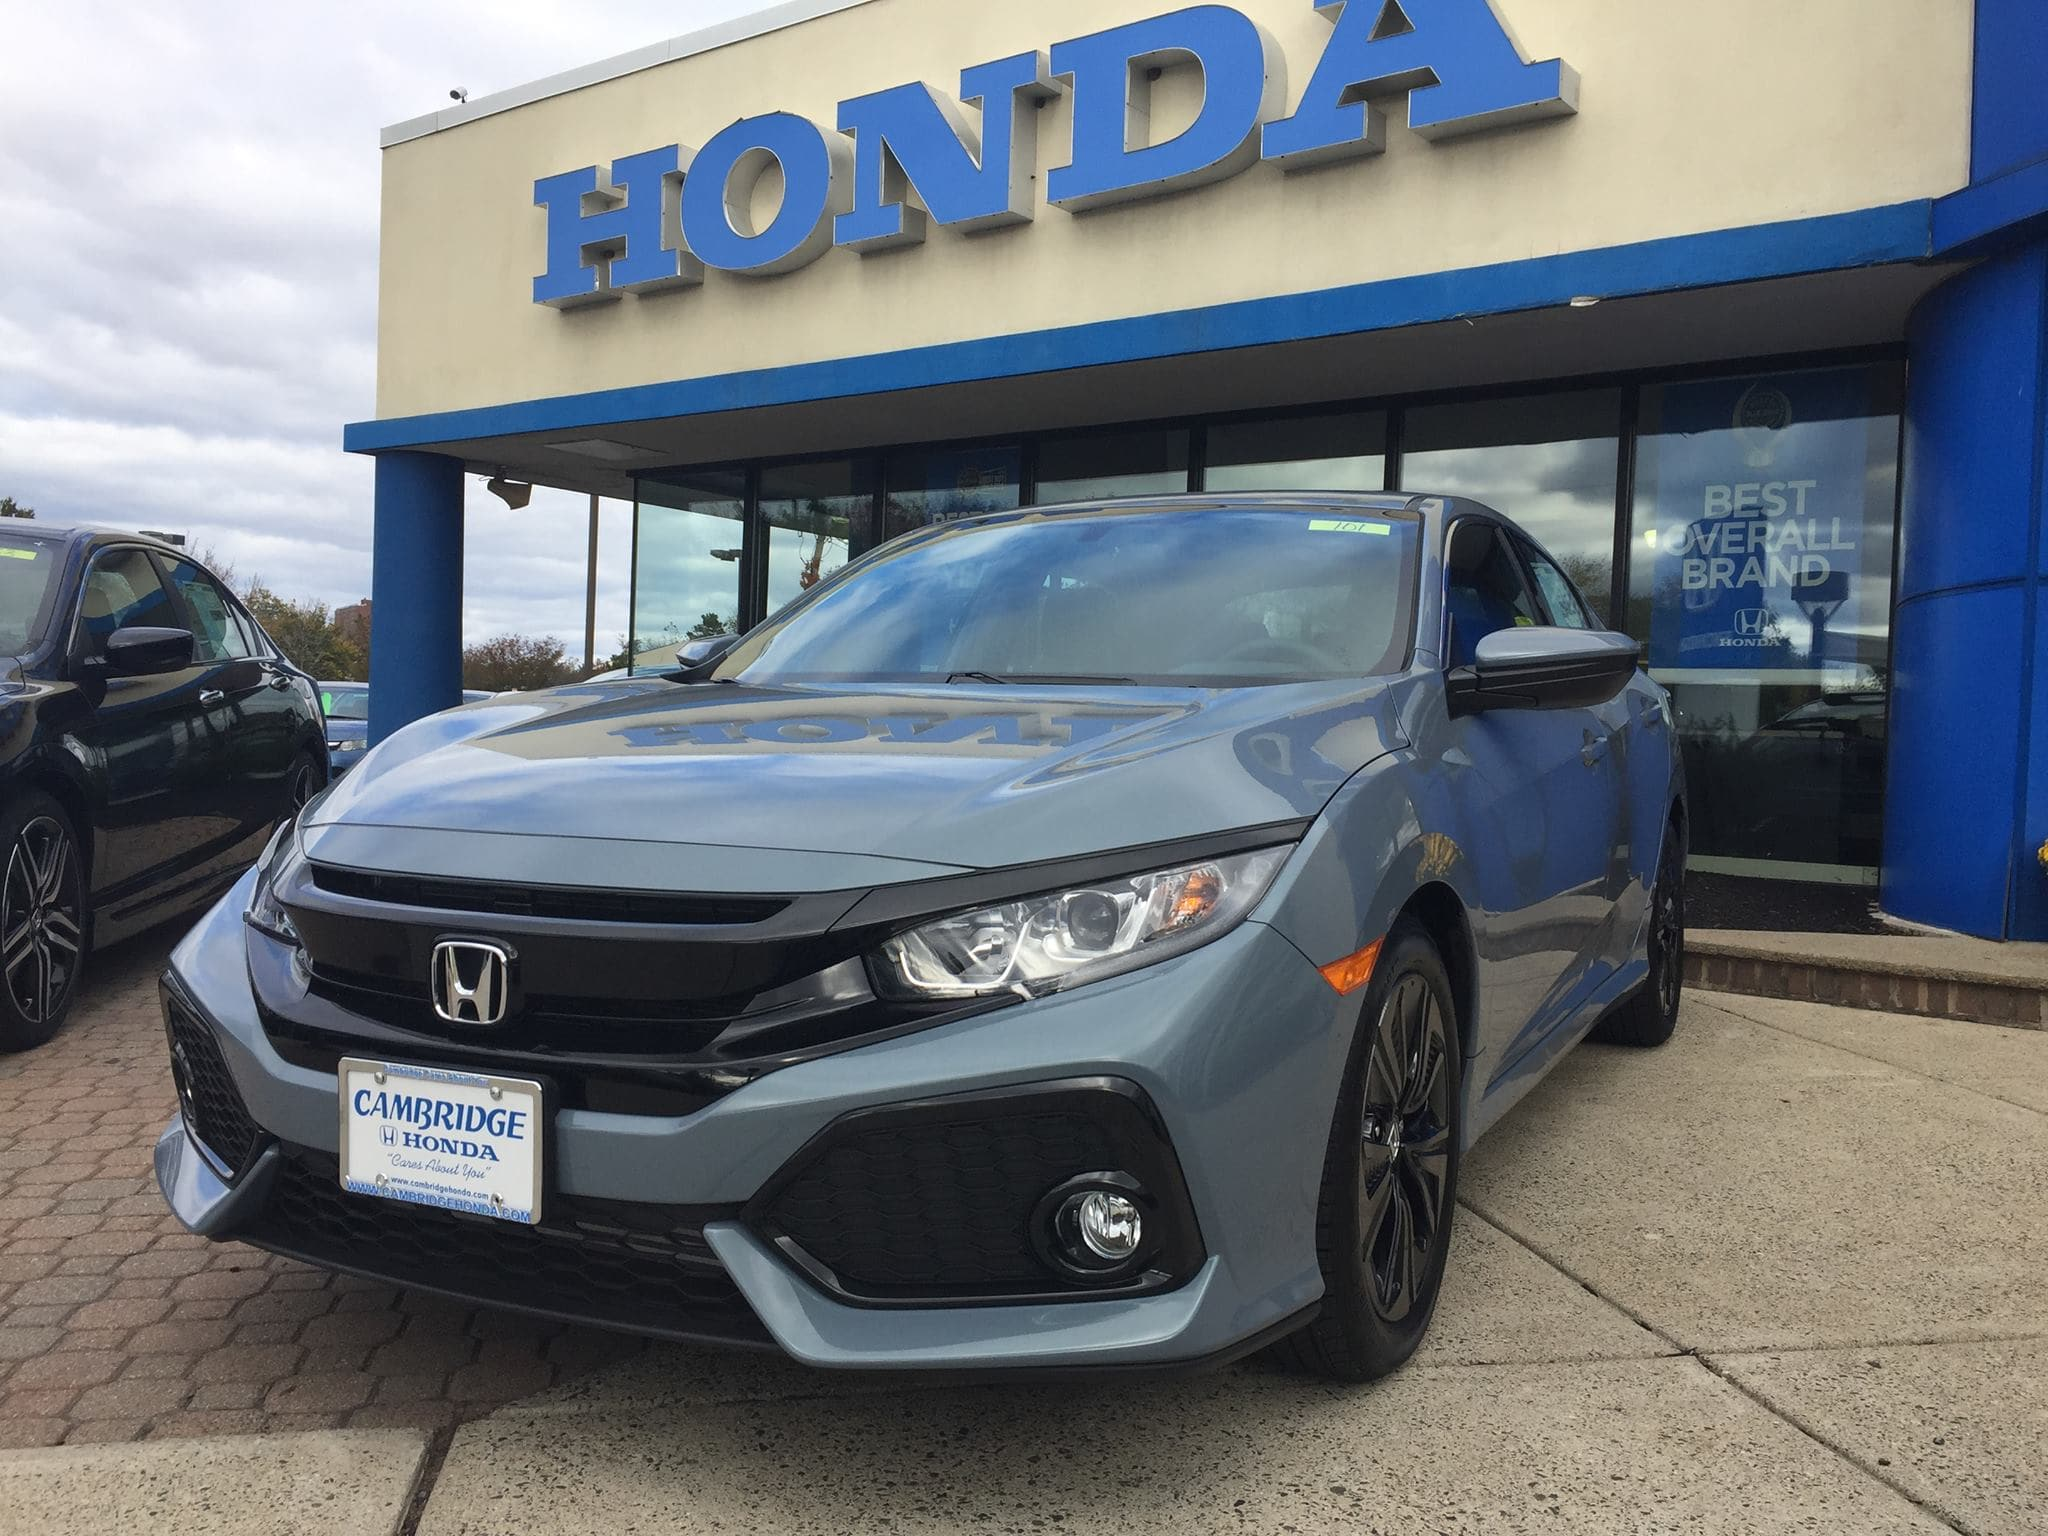 cambridge honda serves waltham ma at our dealership